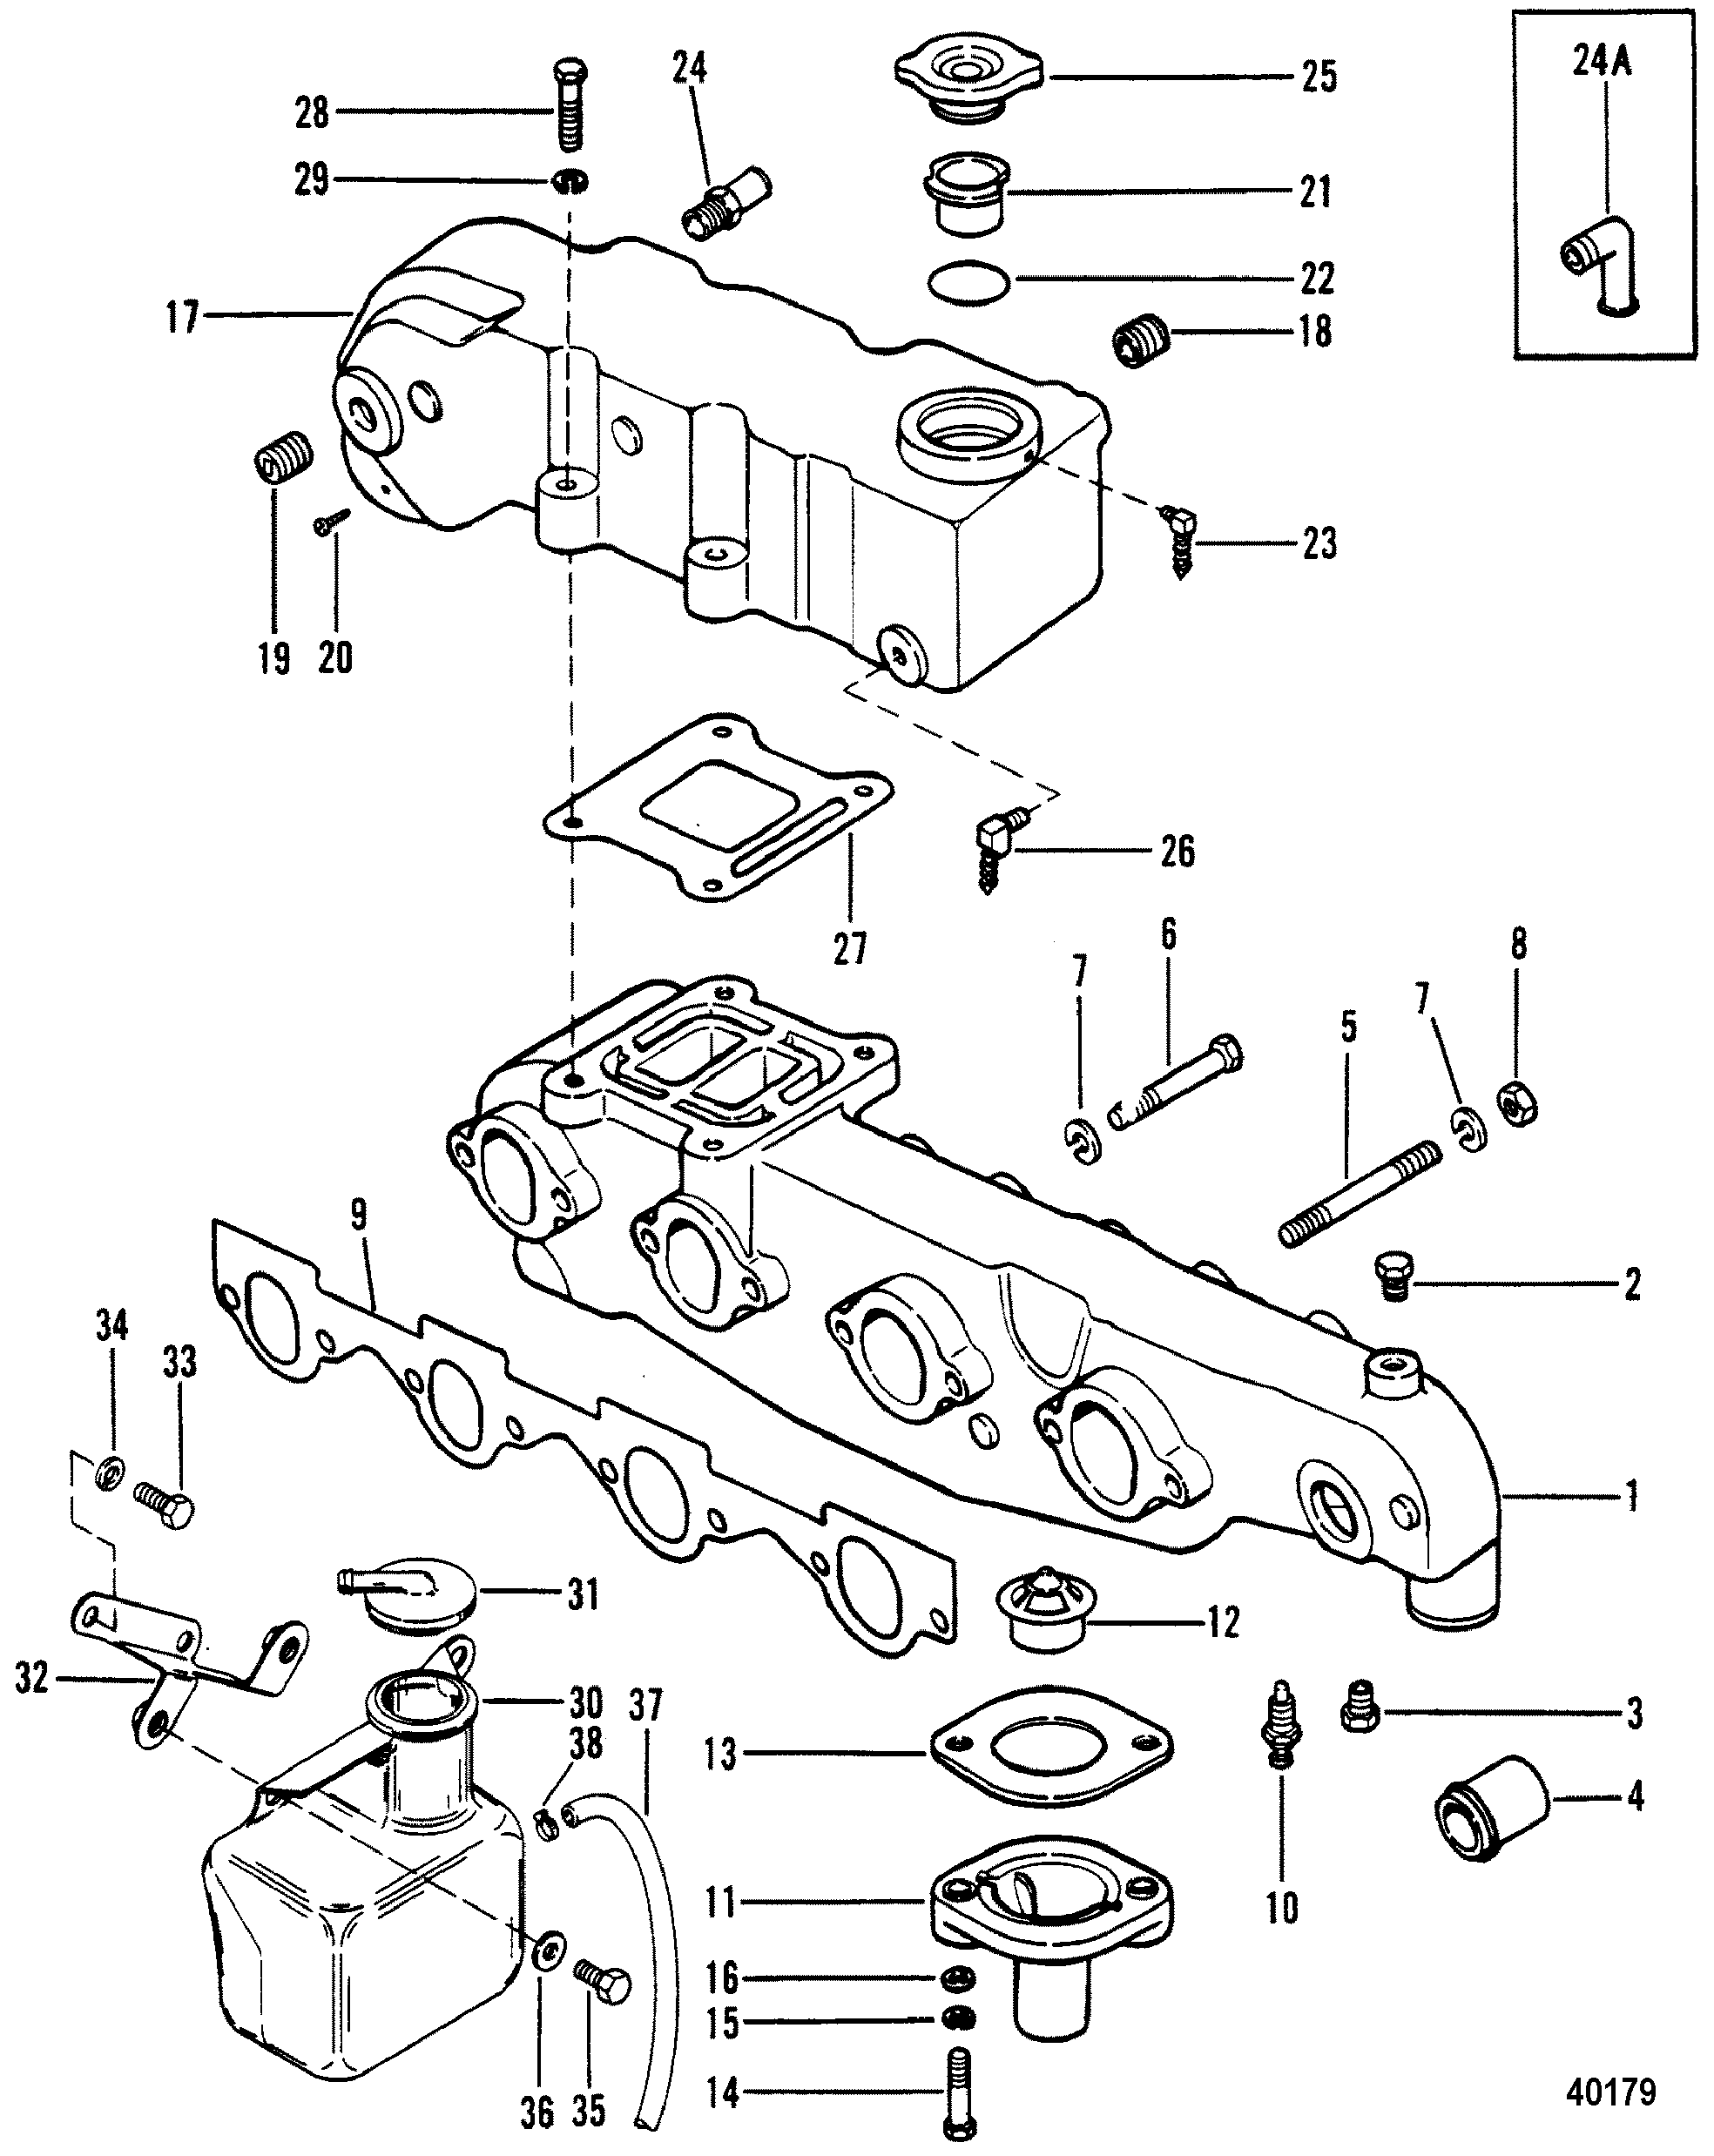 exhaust manifold and exhaust for mercruiser 470 engine